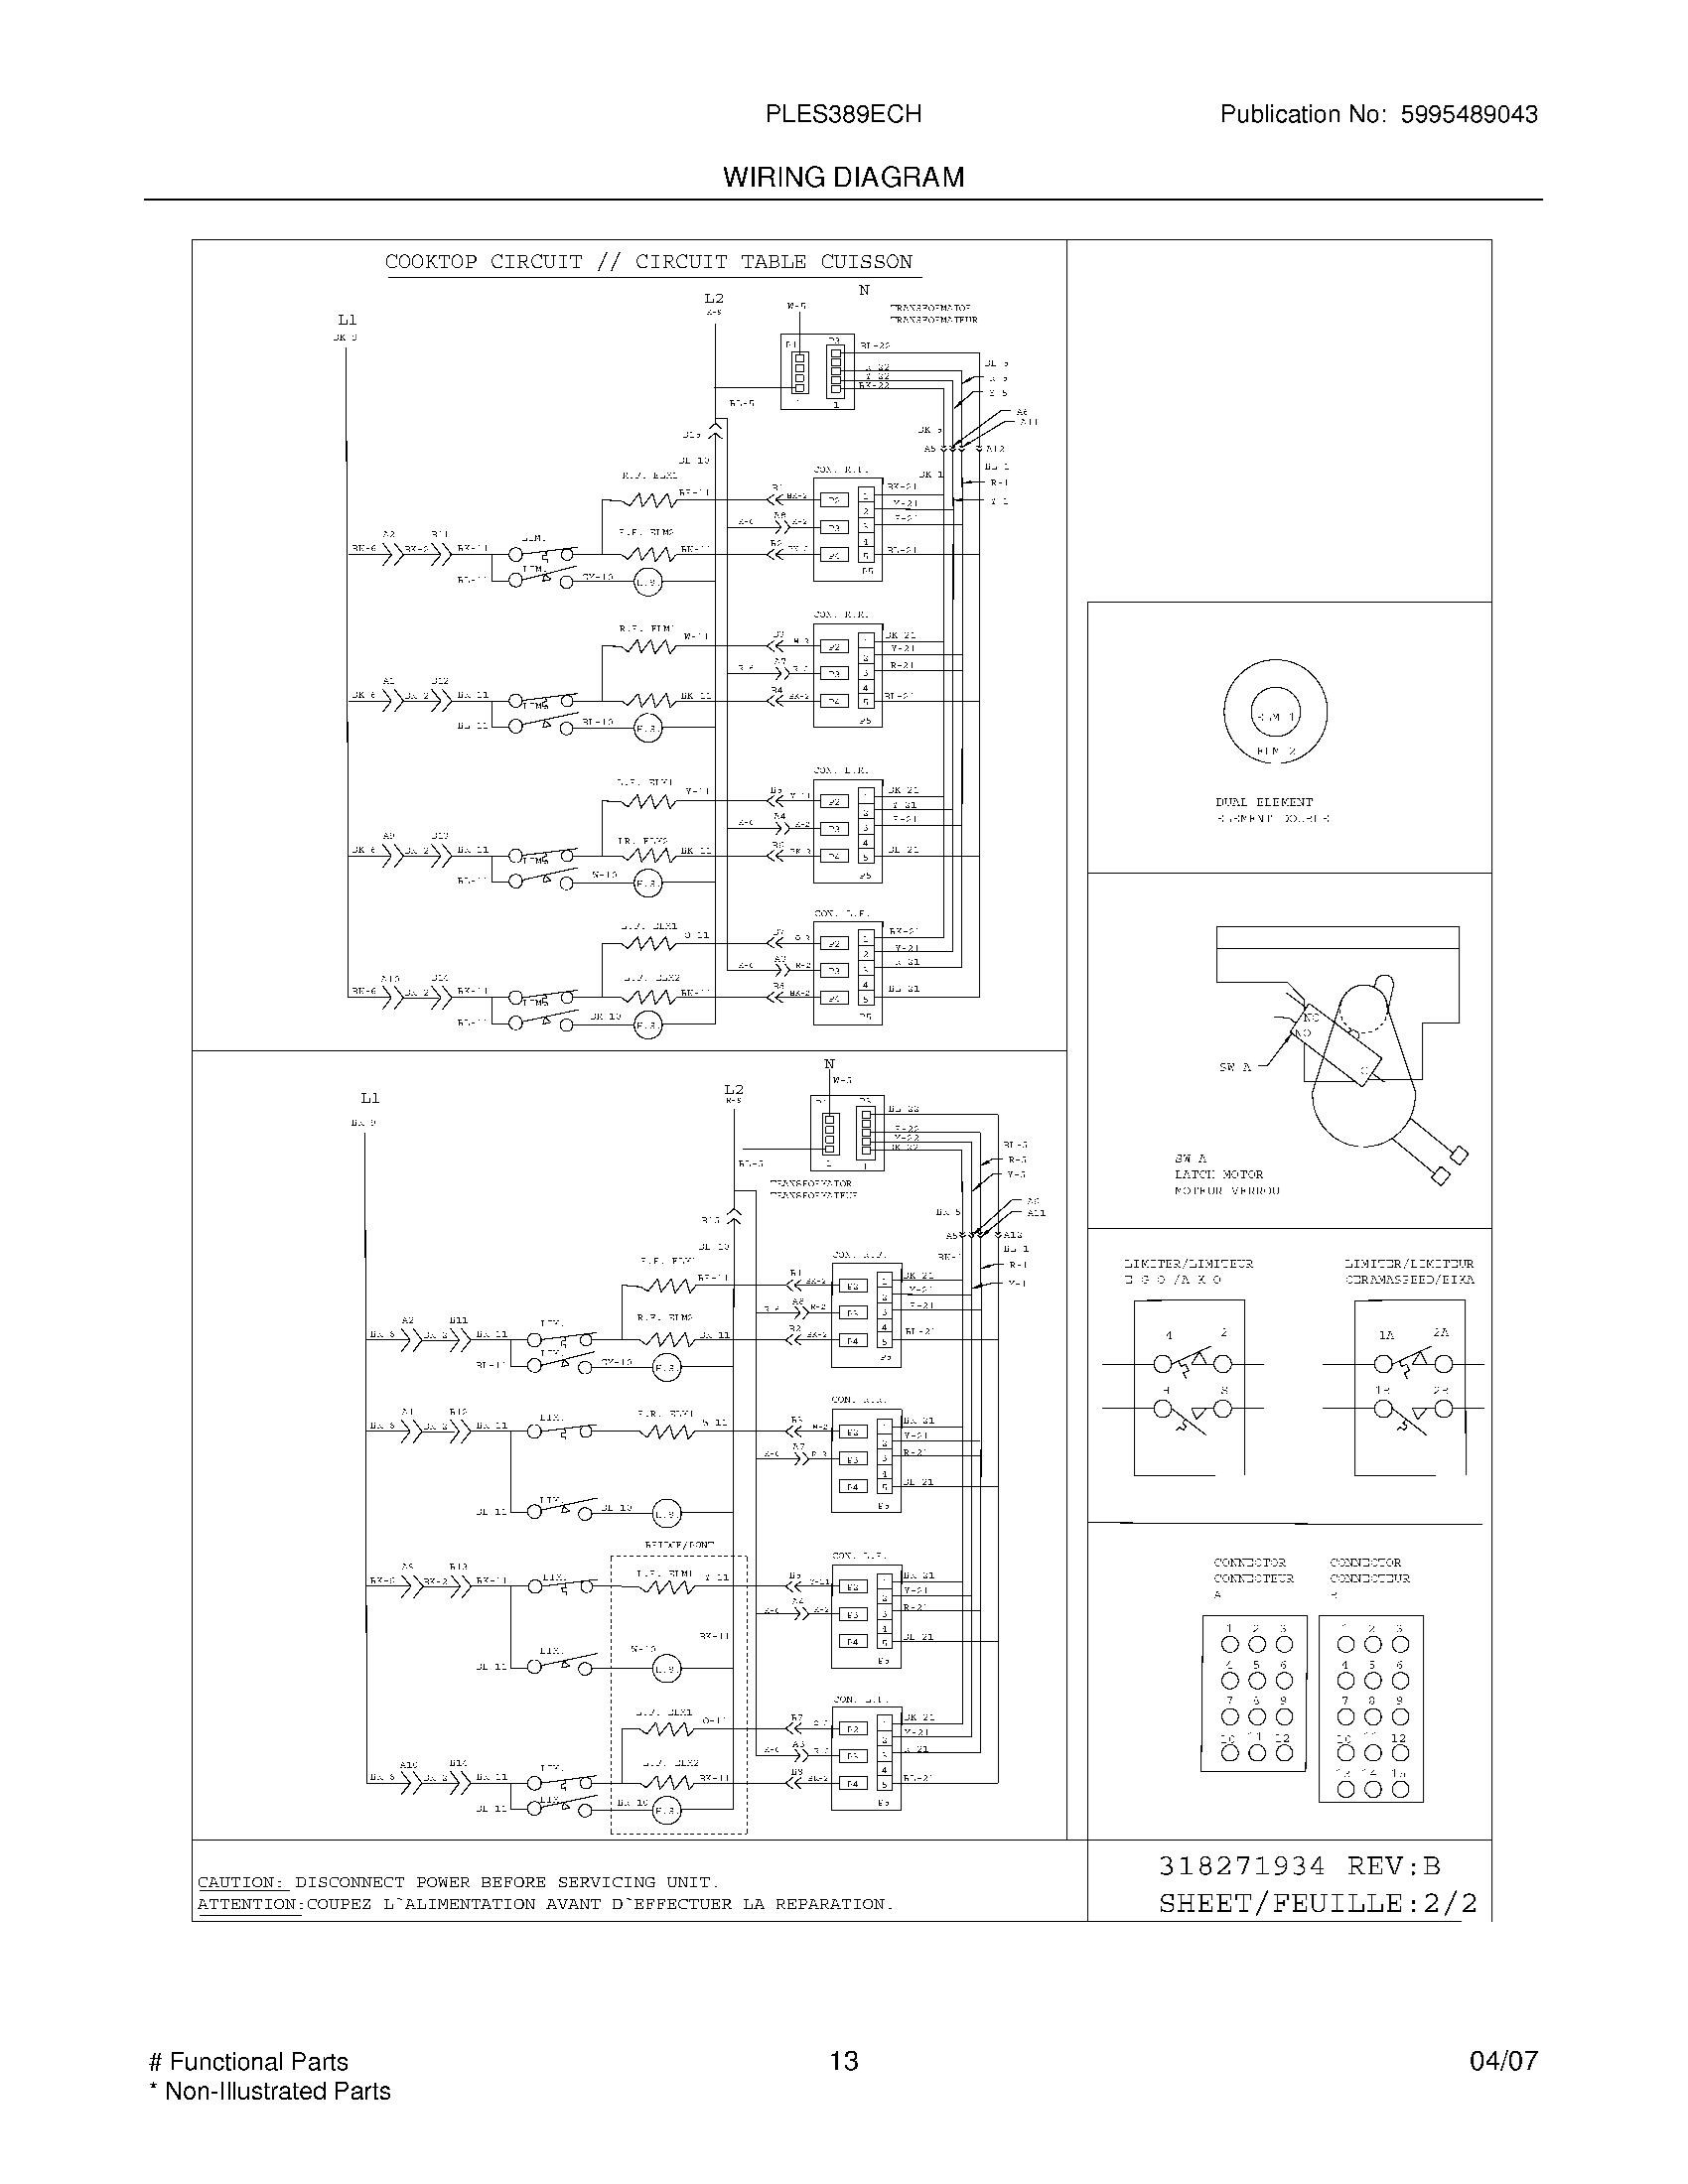 ElectroluxImg_19000101 20150717_00146085?width\=206 cooktop wiring diagram switch 3 way switch diagram, network network switch wiring diagram at n-0.co